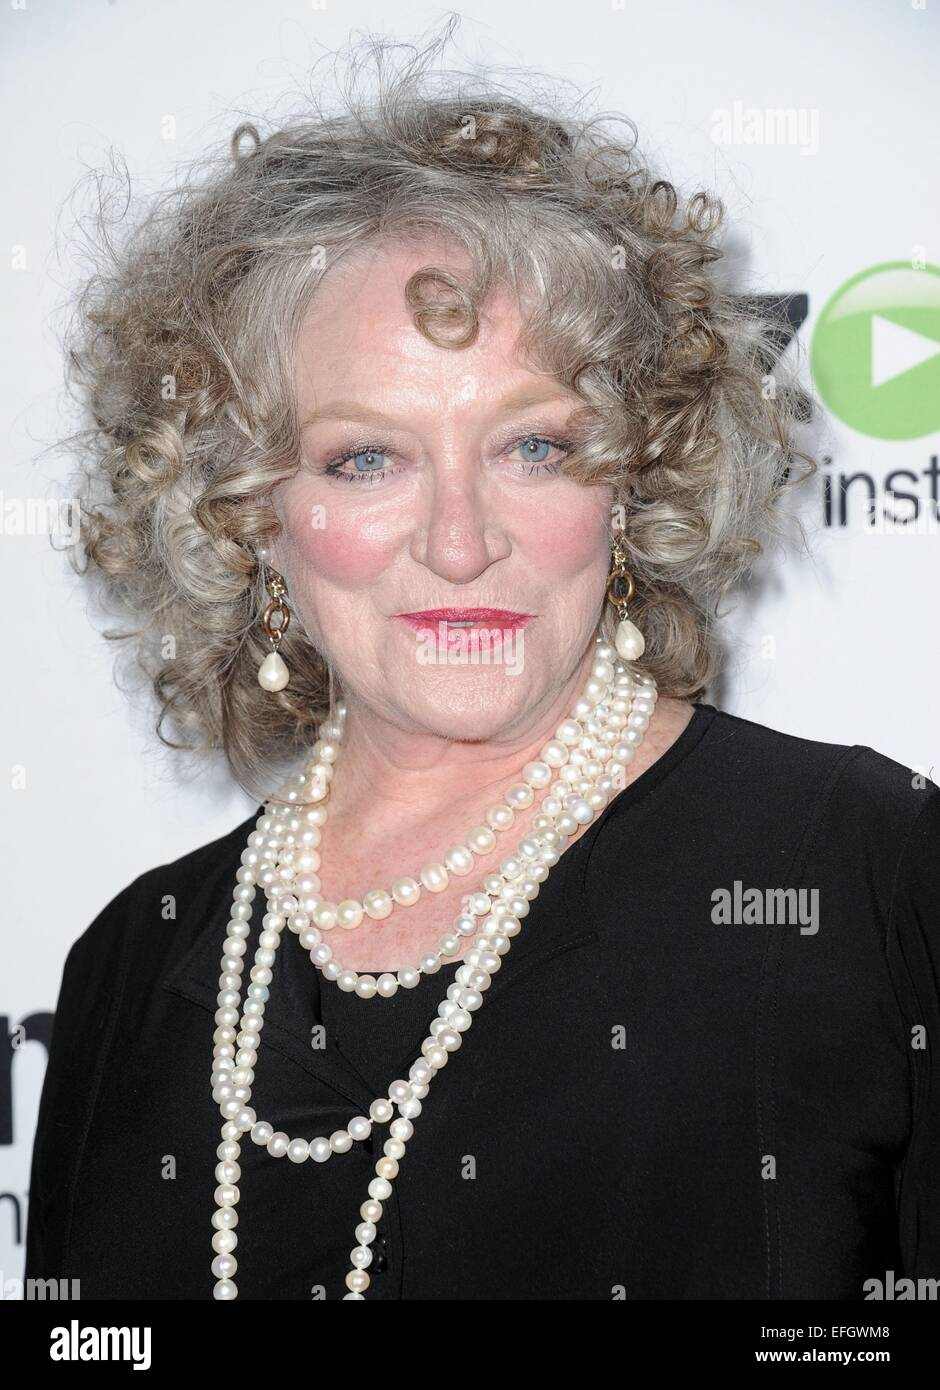 Veronica Cartwright nude (71 photo), Topless, Cleavage, Twitter, cameltoe 2020